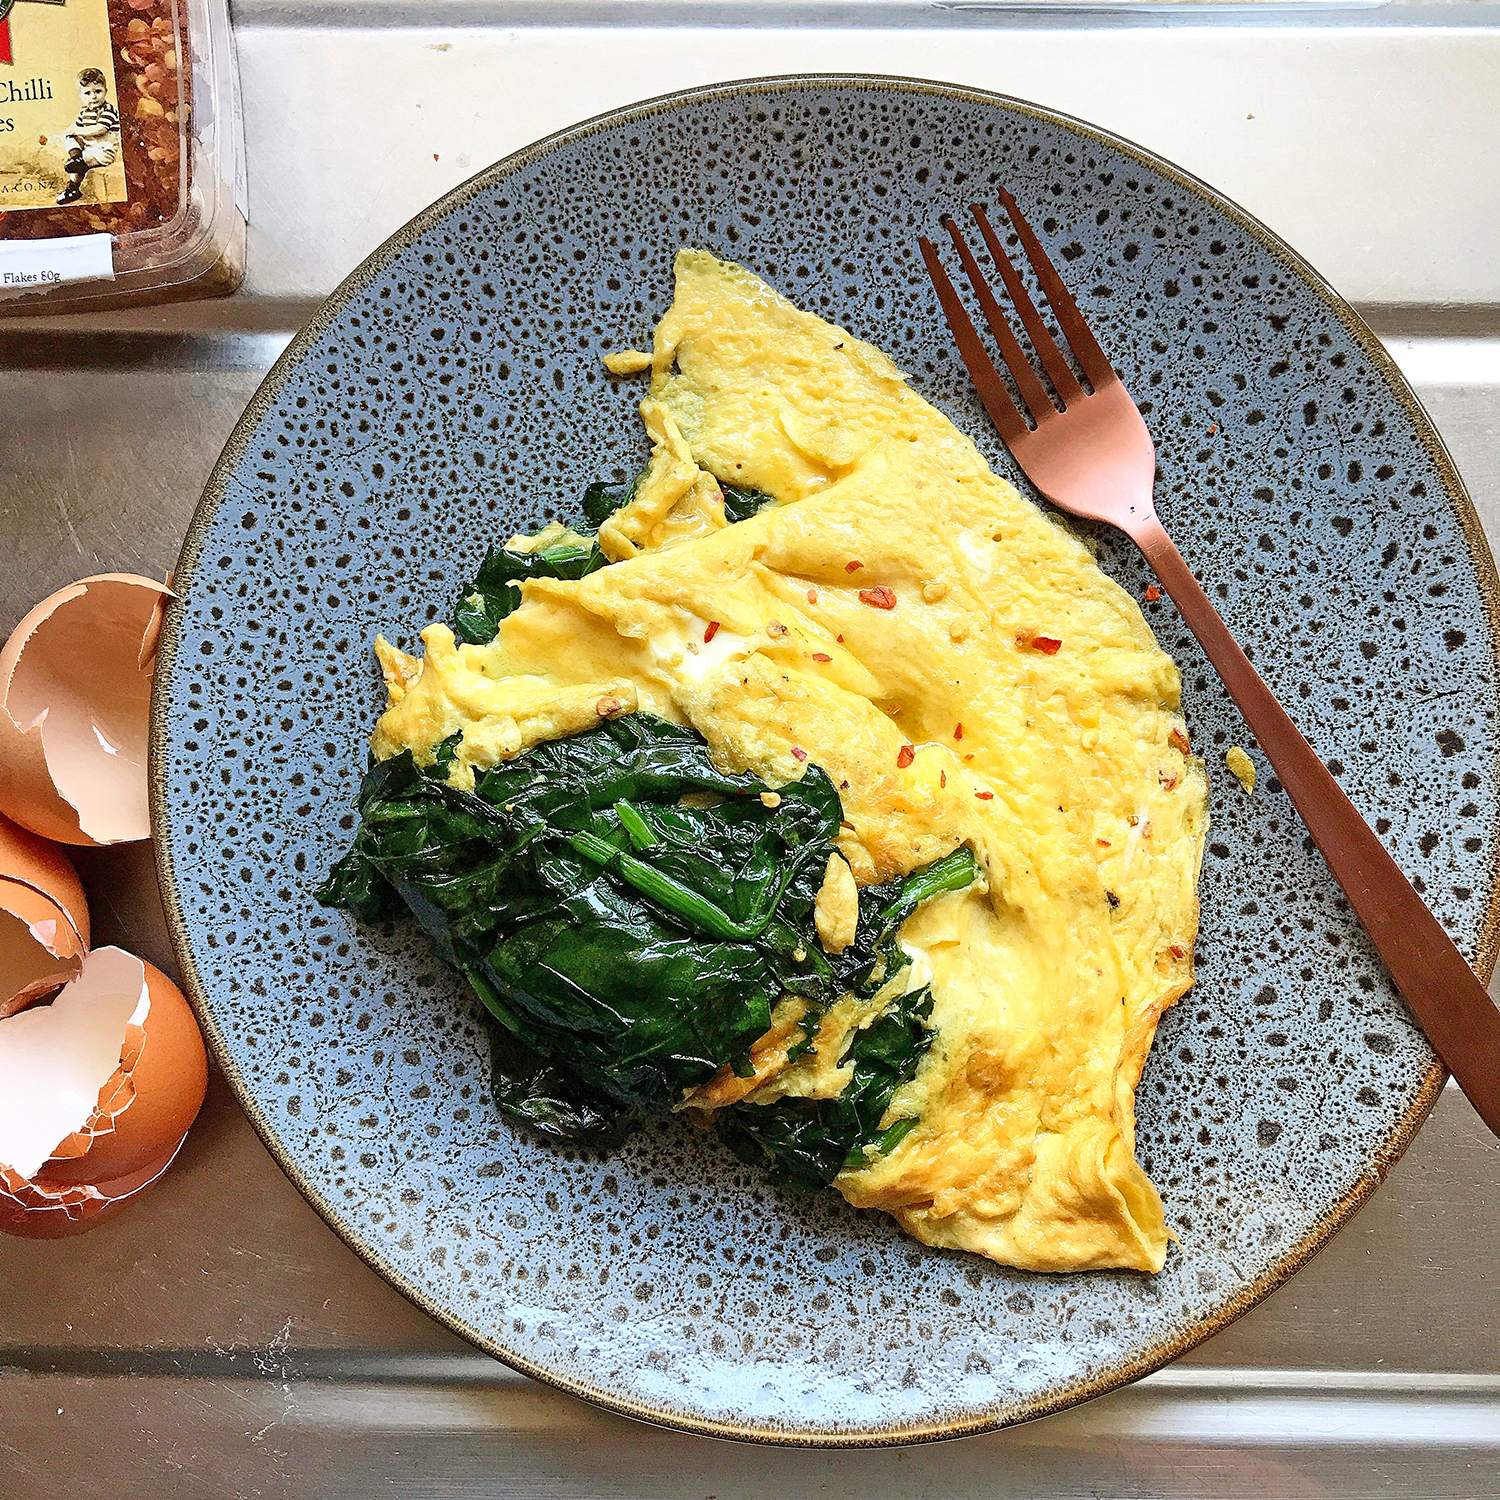 If I had a choice, I would have grilled pork belly, steamed shrimps, 'inihaw na bangus' and a salad of steamed okra, tomatoes and seaweed. But this three-egg spinach omelette would have to do.